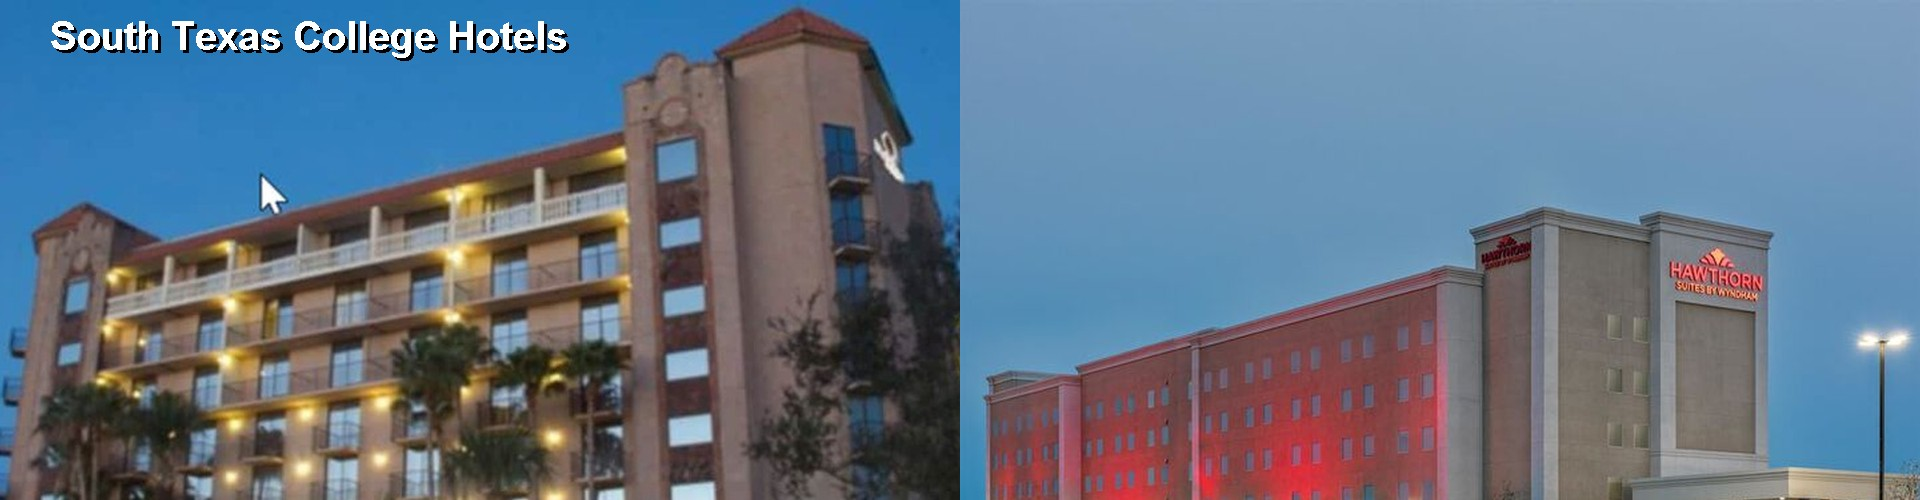 5 Best Hotels near South Texas College